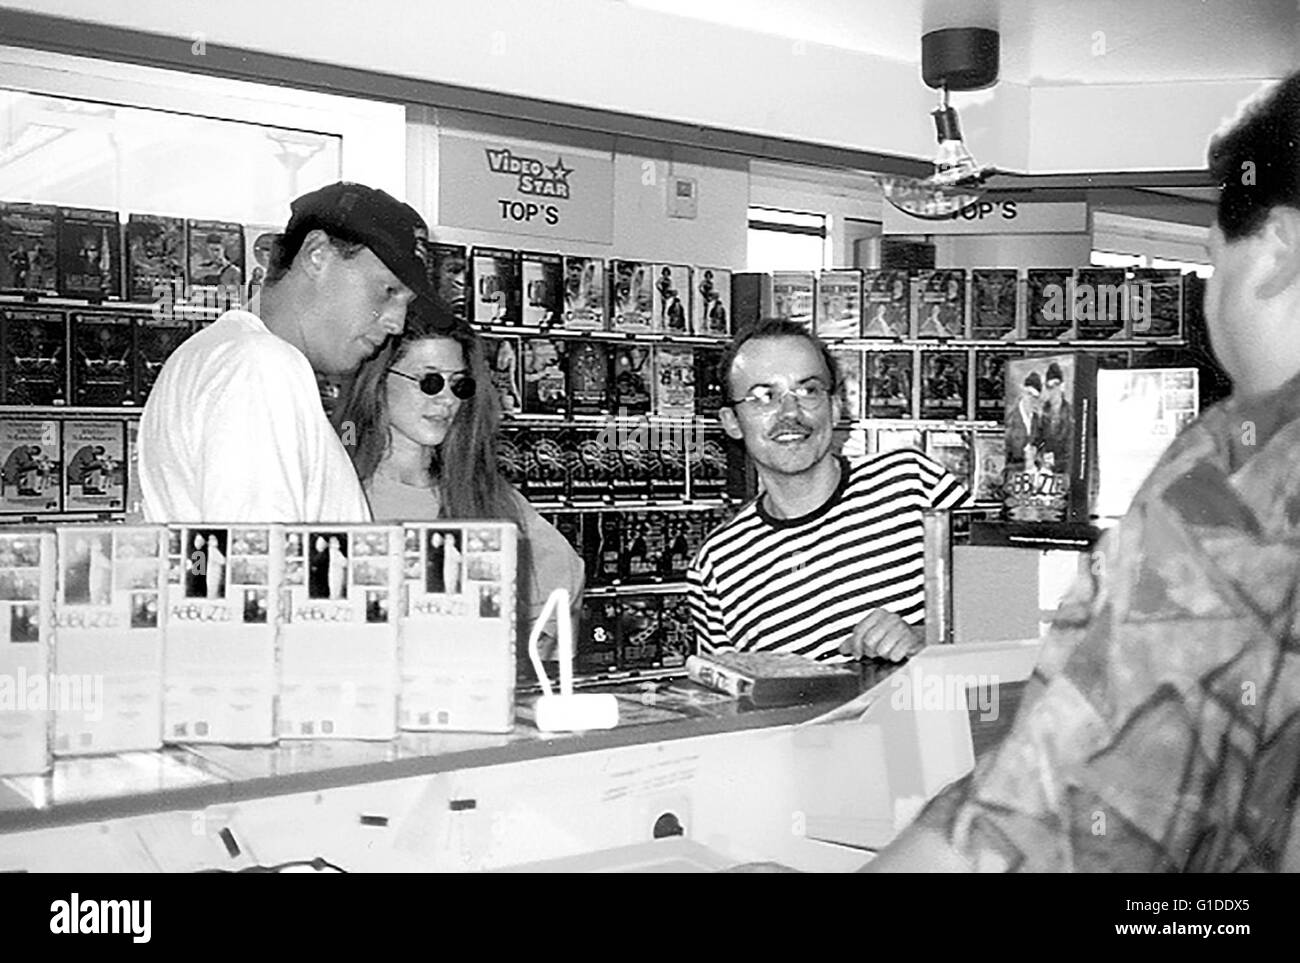 Einrichtung Black And White Stock Photos U0026 Images   Alamy